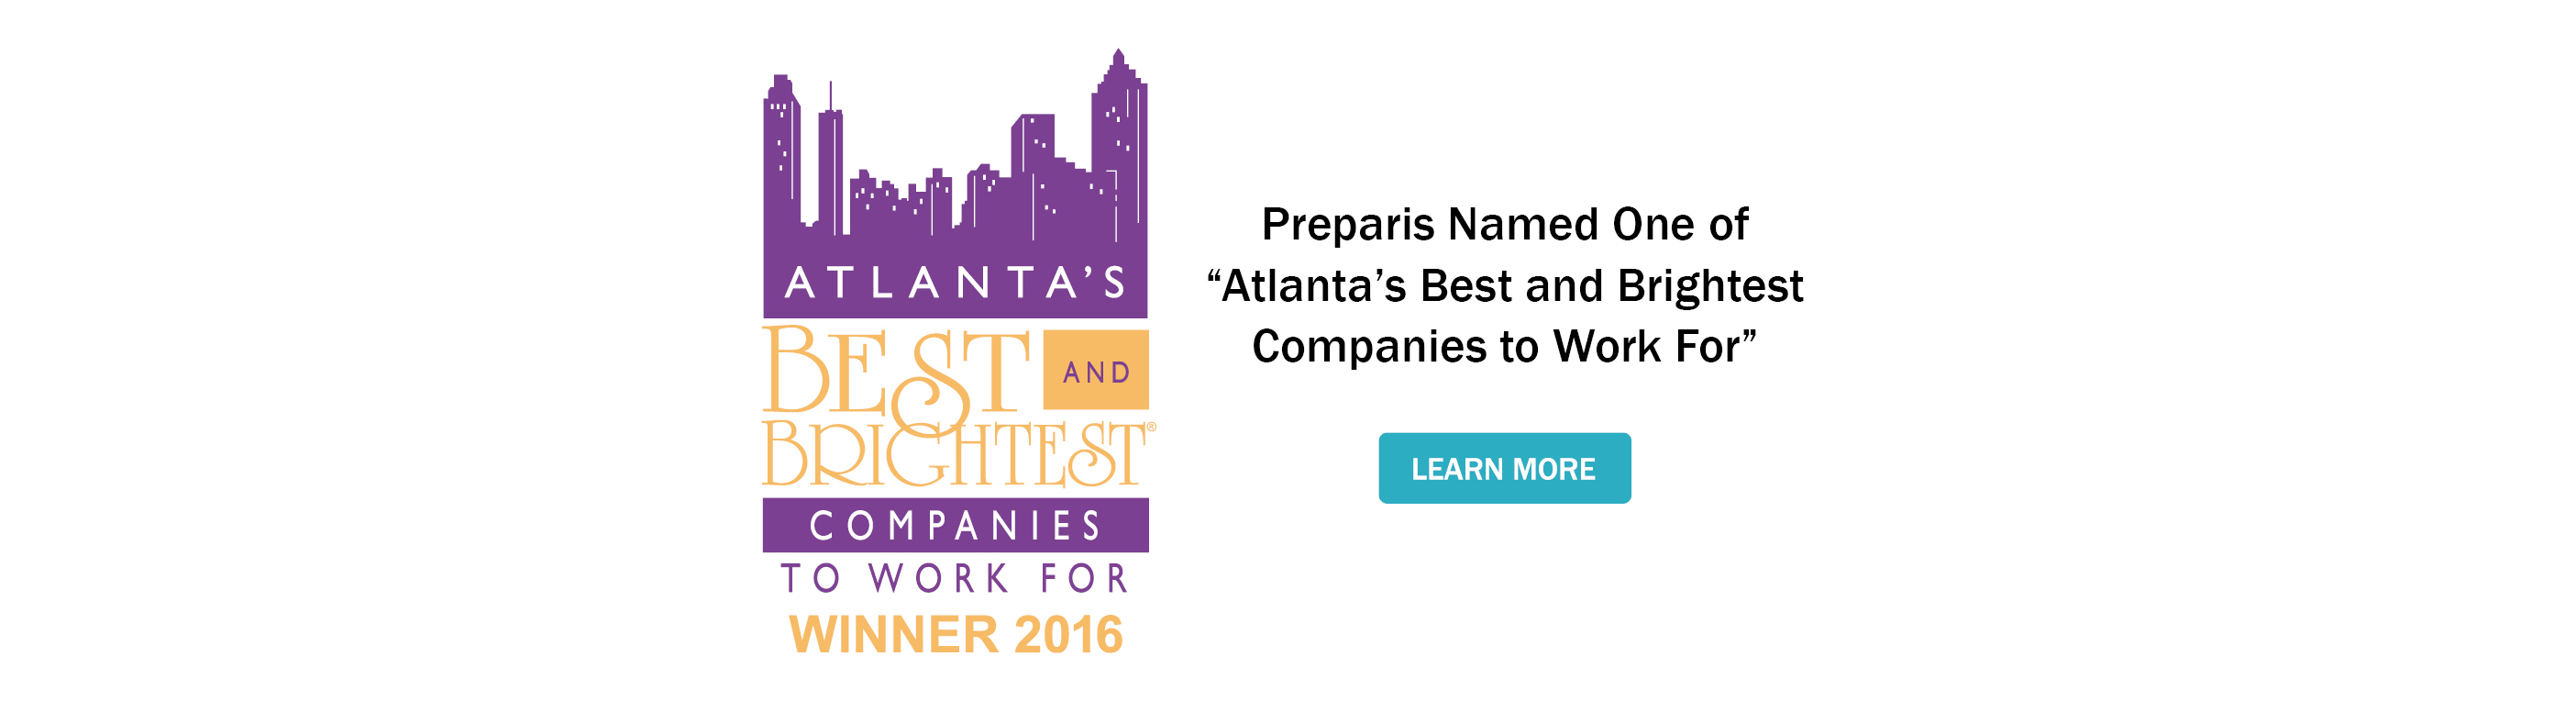 ATL-Best-and-Brightest-2016-Hero-Image